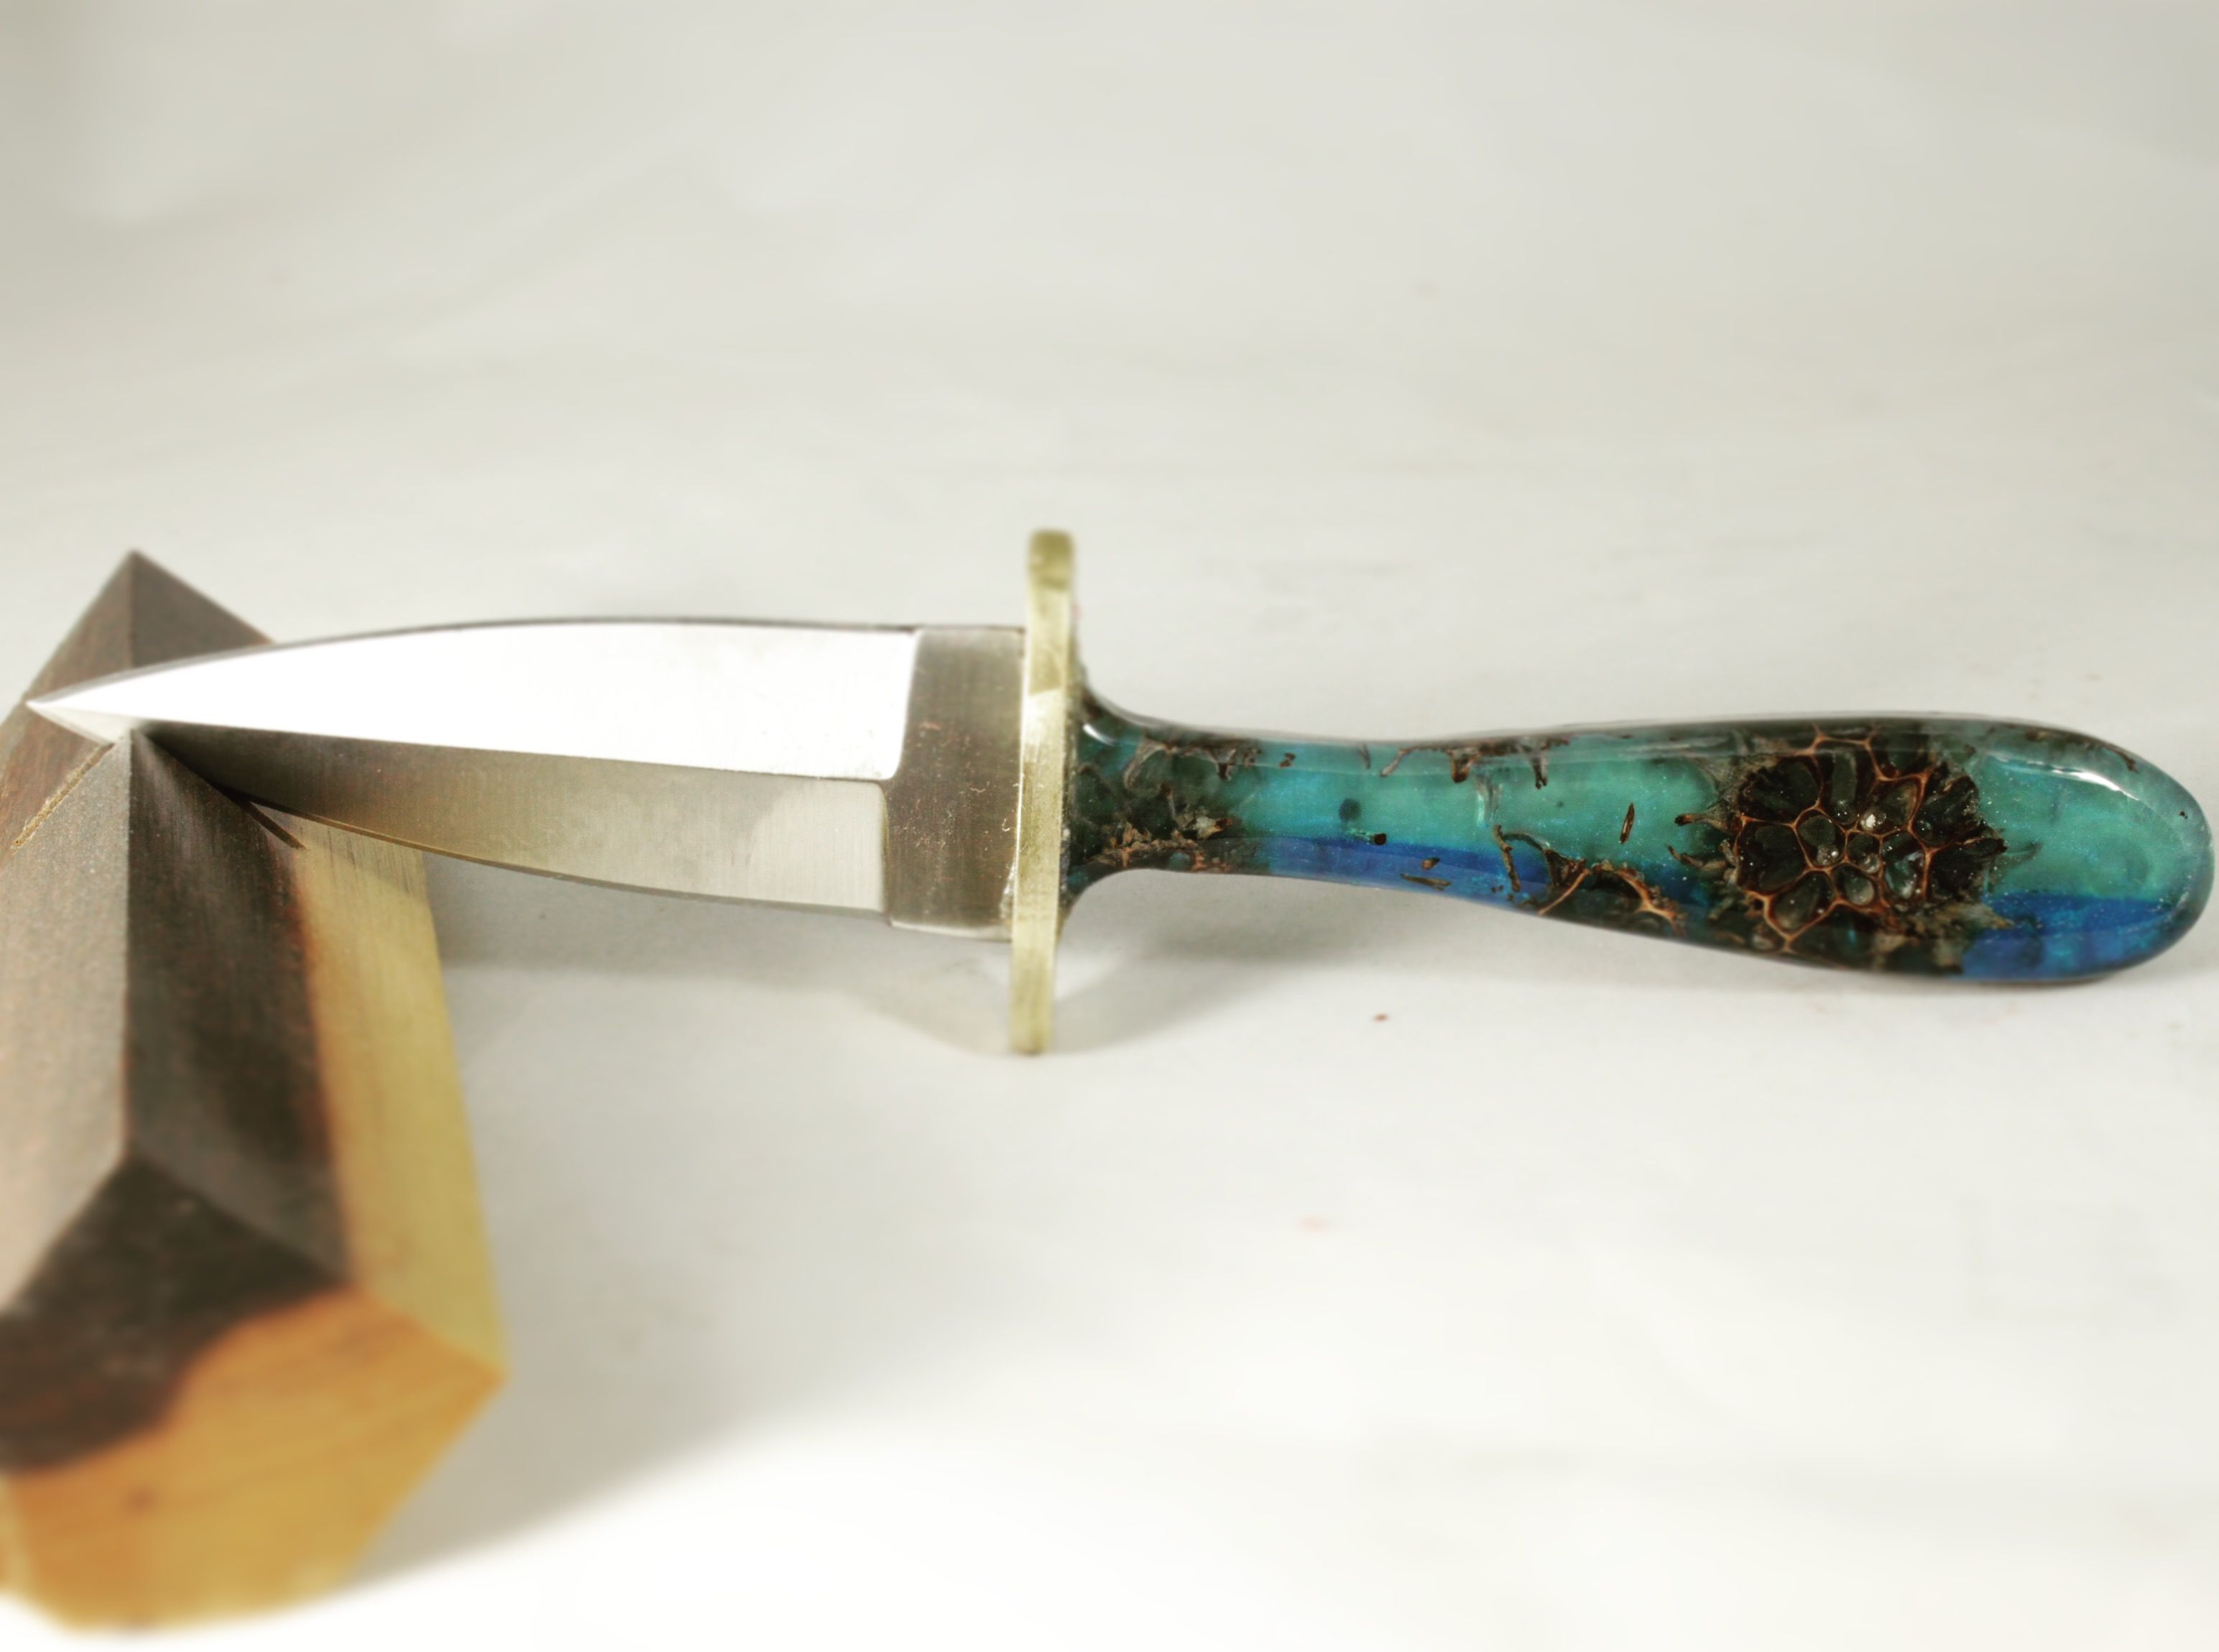 Boot knife with resin handle  #knife knives blades survival